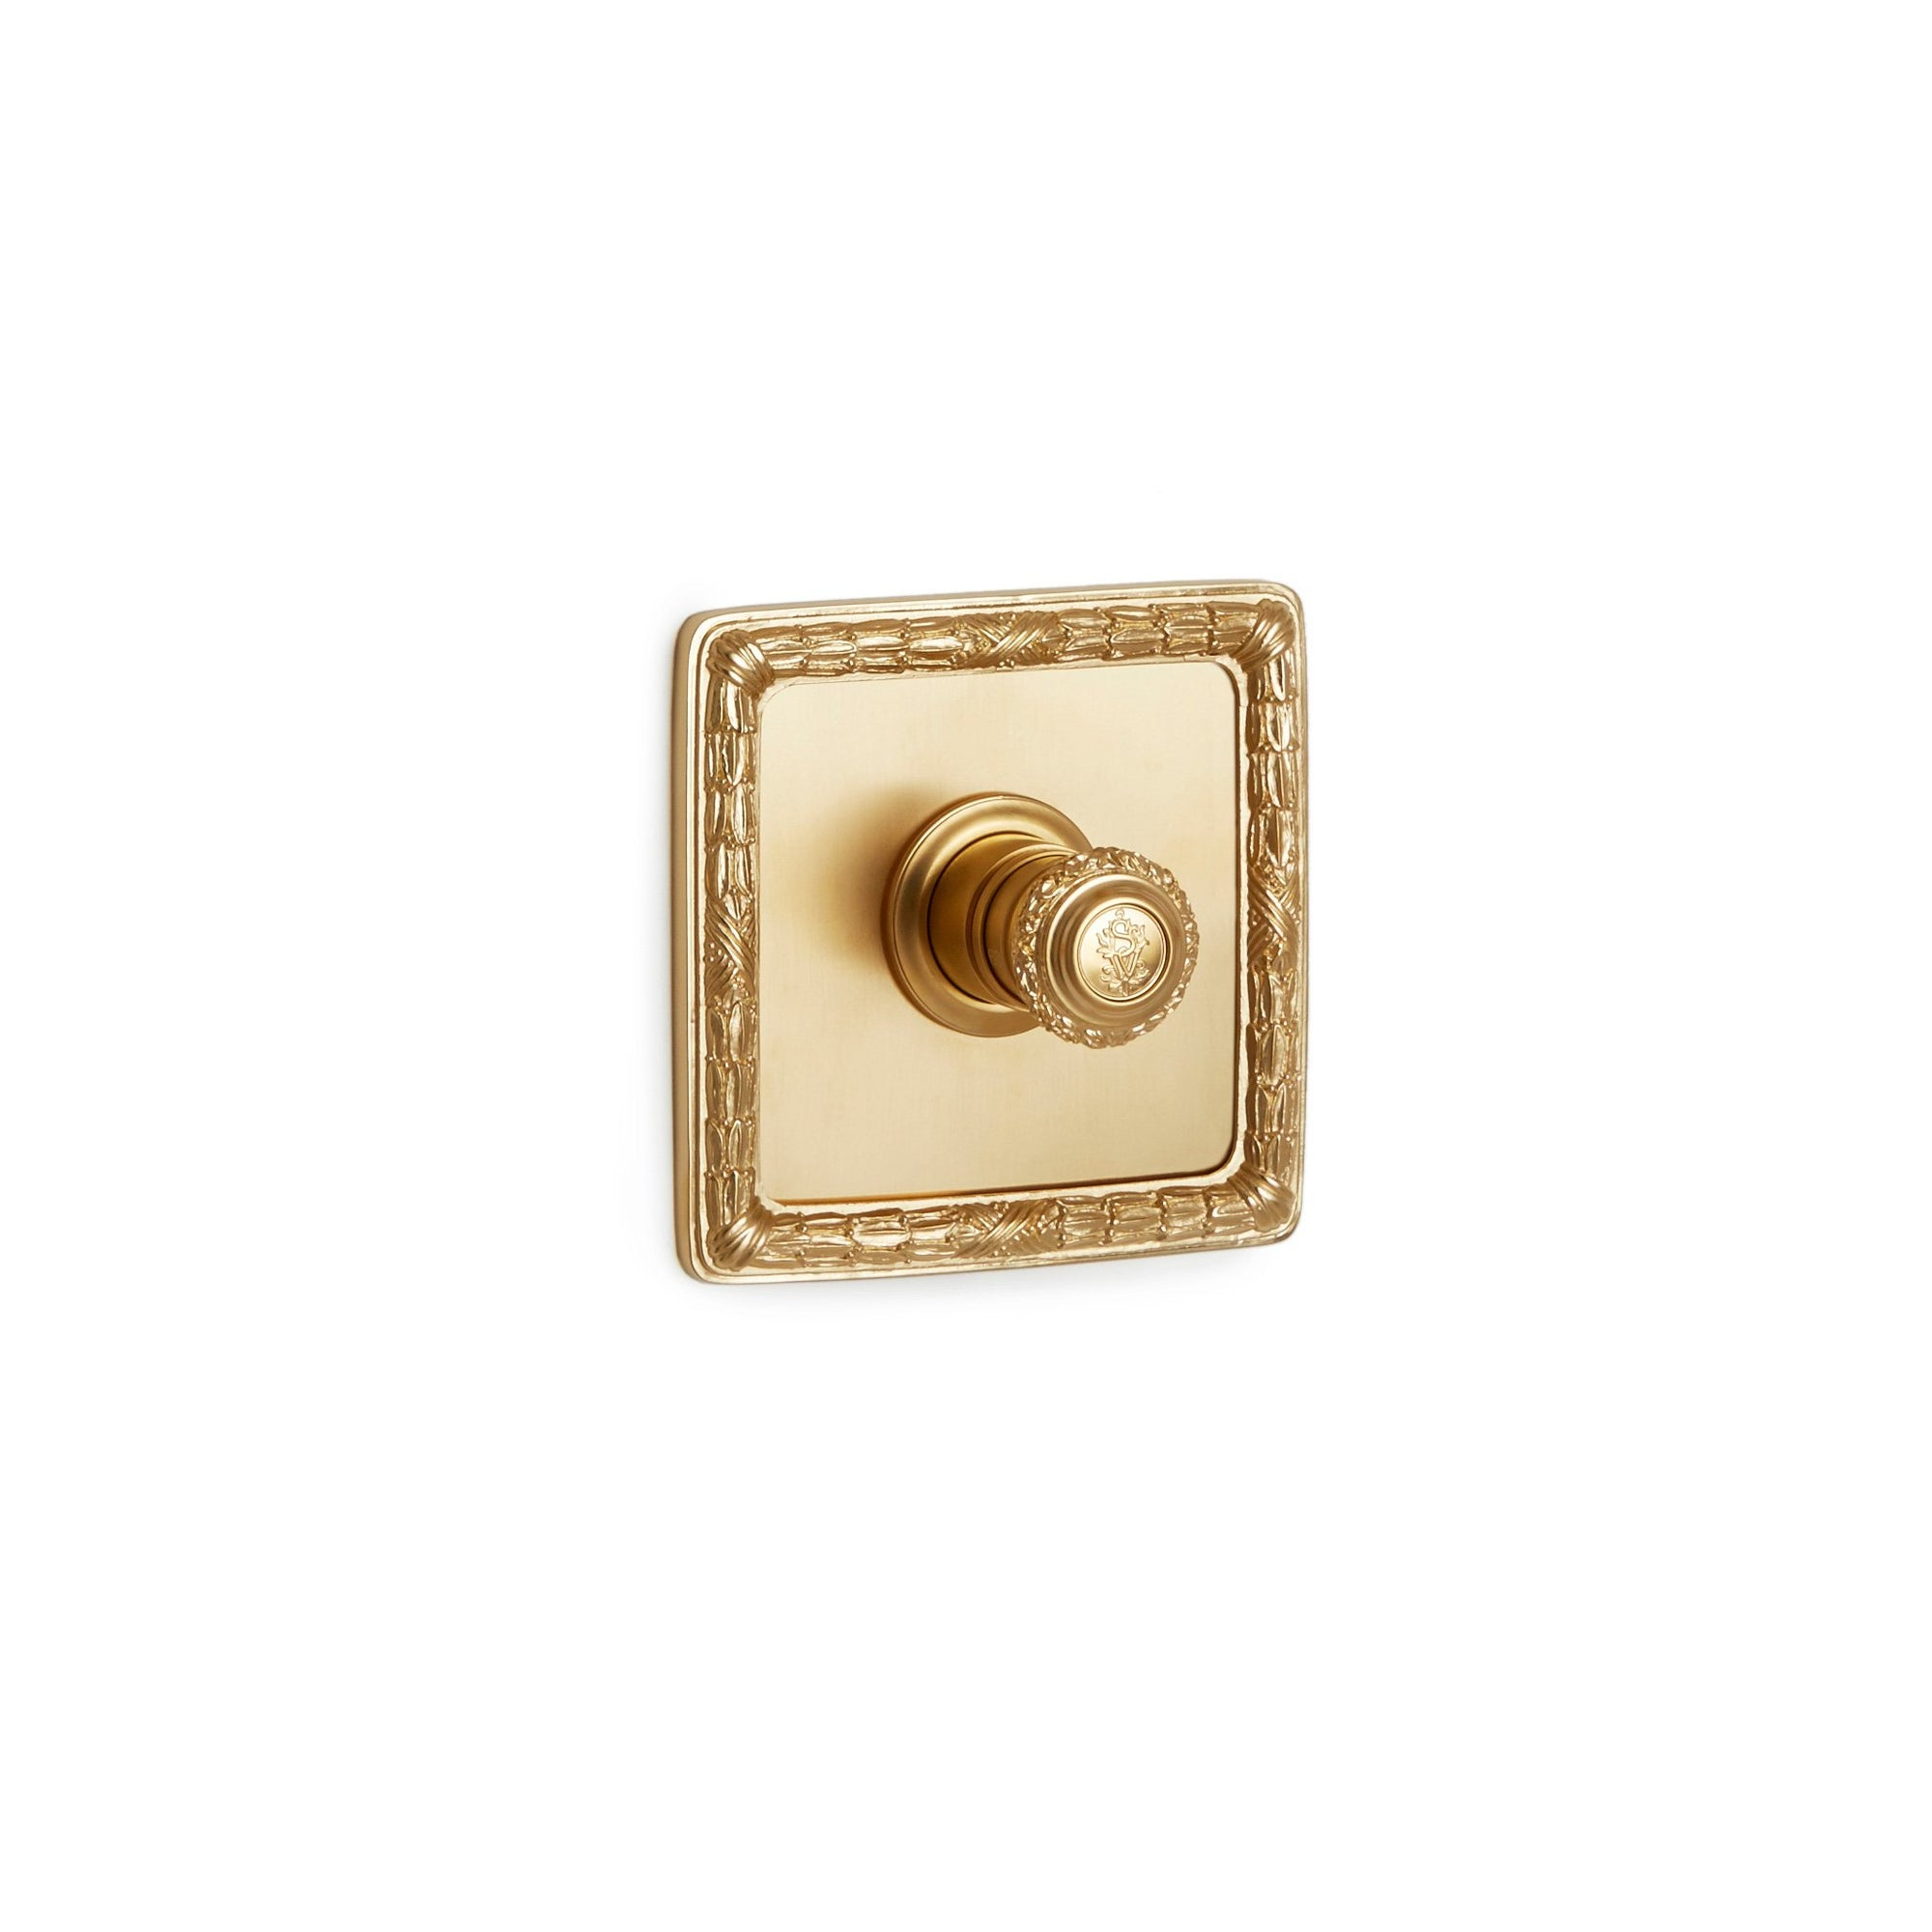 TMO02AC-LOGO-GP Sherle Wagner International Acanthus High Flow Thermostatic Trim in Gold Plate metal finish